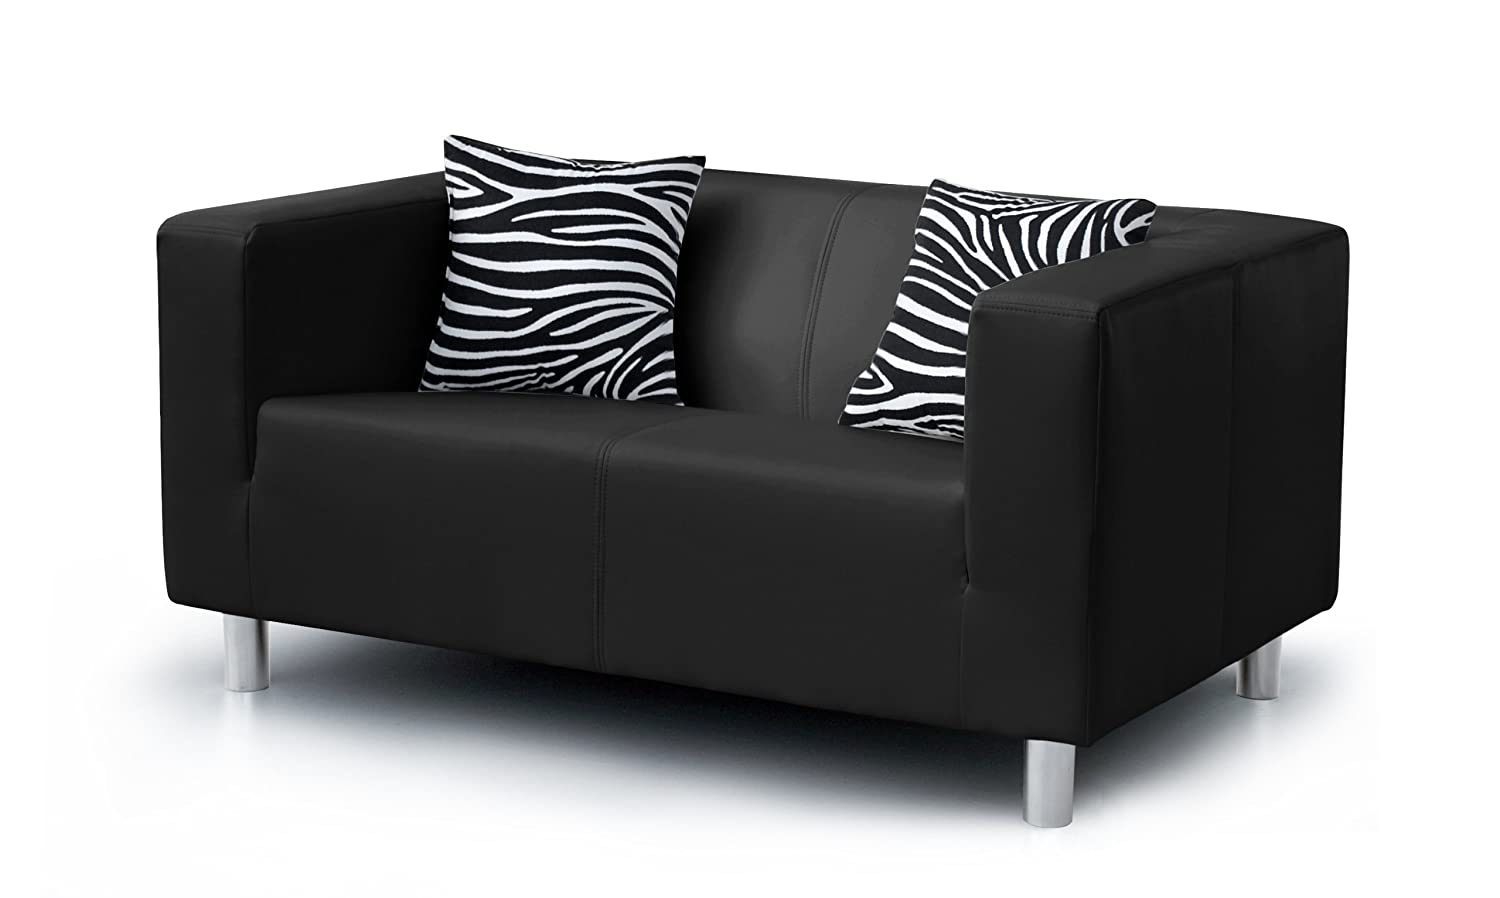 ledersofa schwarz 2 sitzer. Black Bedroom Furniture Sets. Home Design Ideas